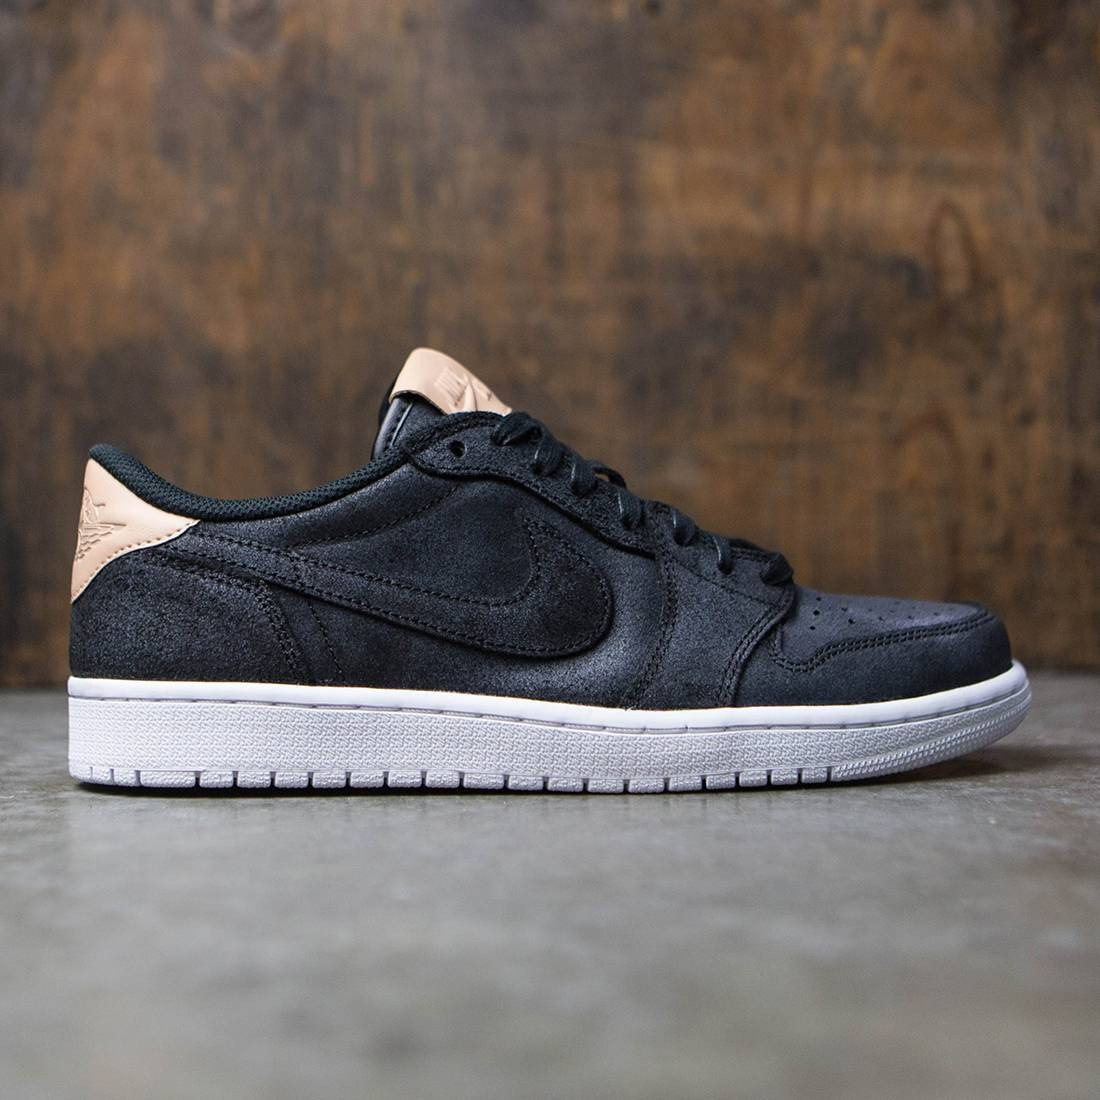 c7b7ed8cd5bc7b jordan men air jordan 1 retro low og premium black vachetta tan white